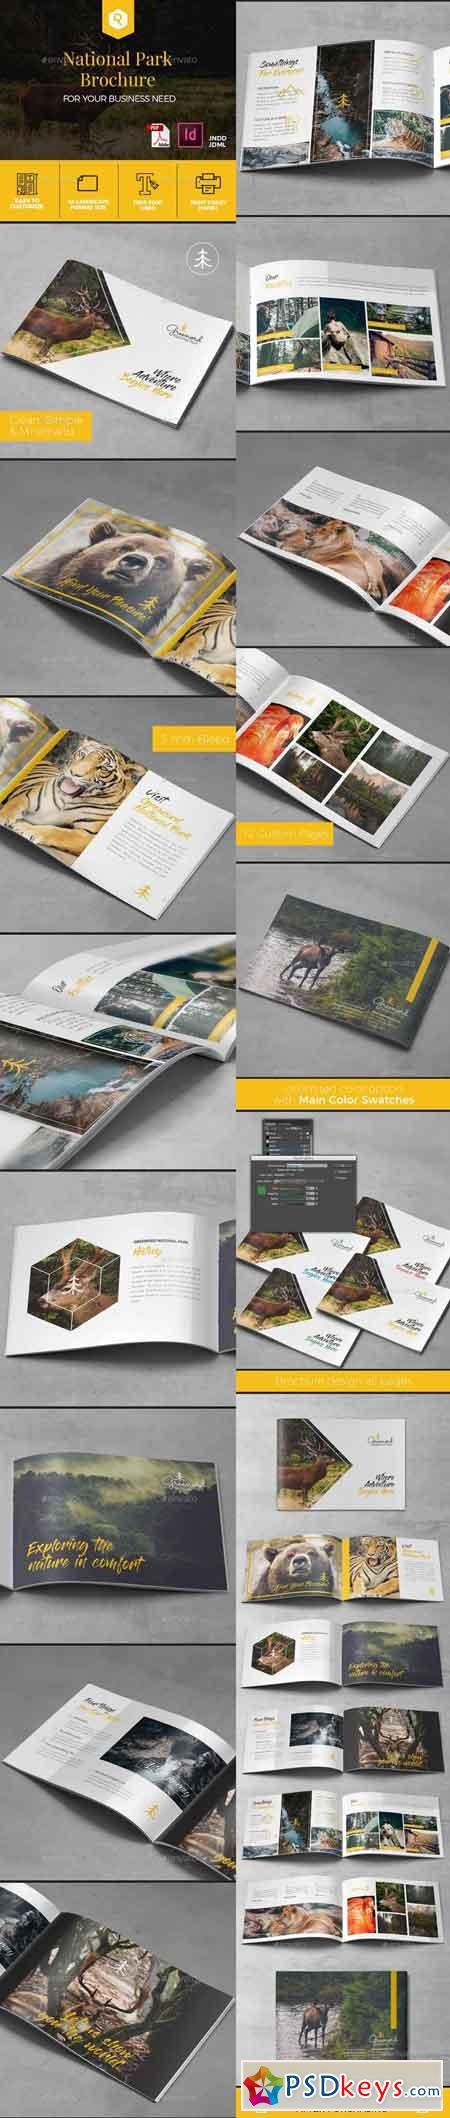 A5 National Park Brochure Template 19644284